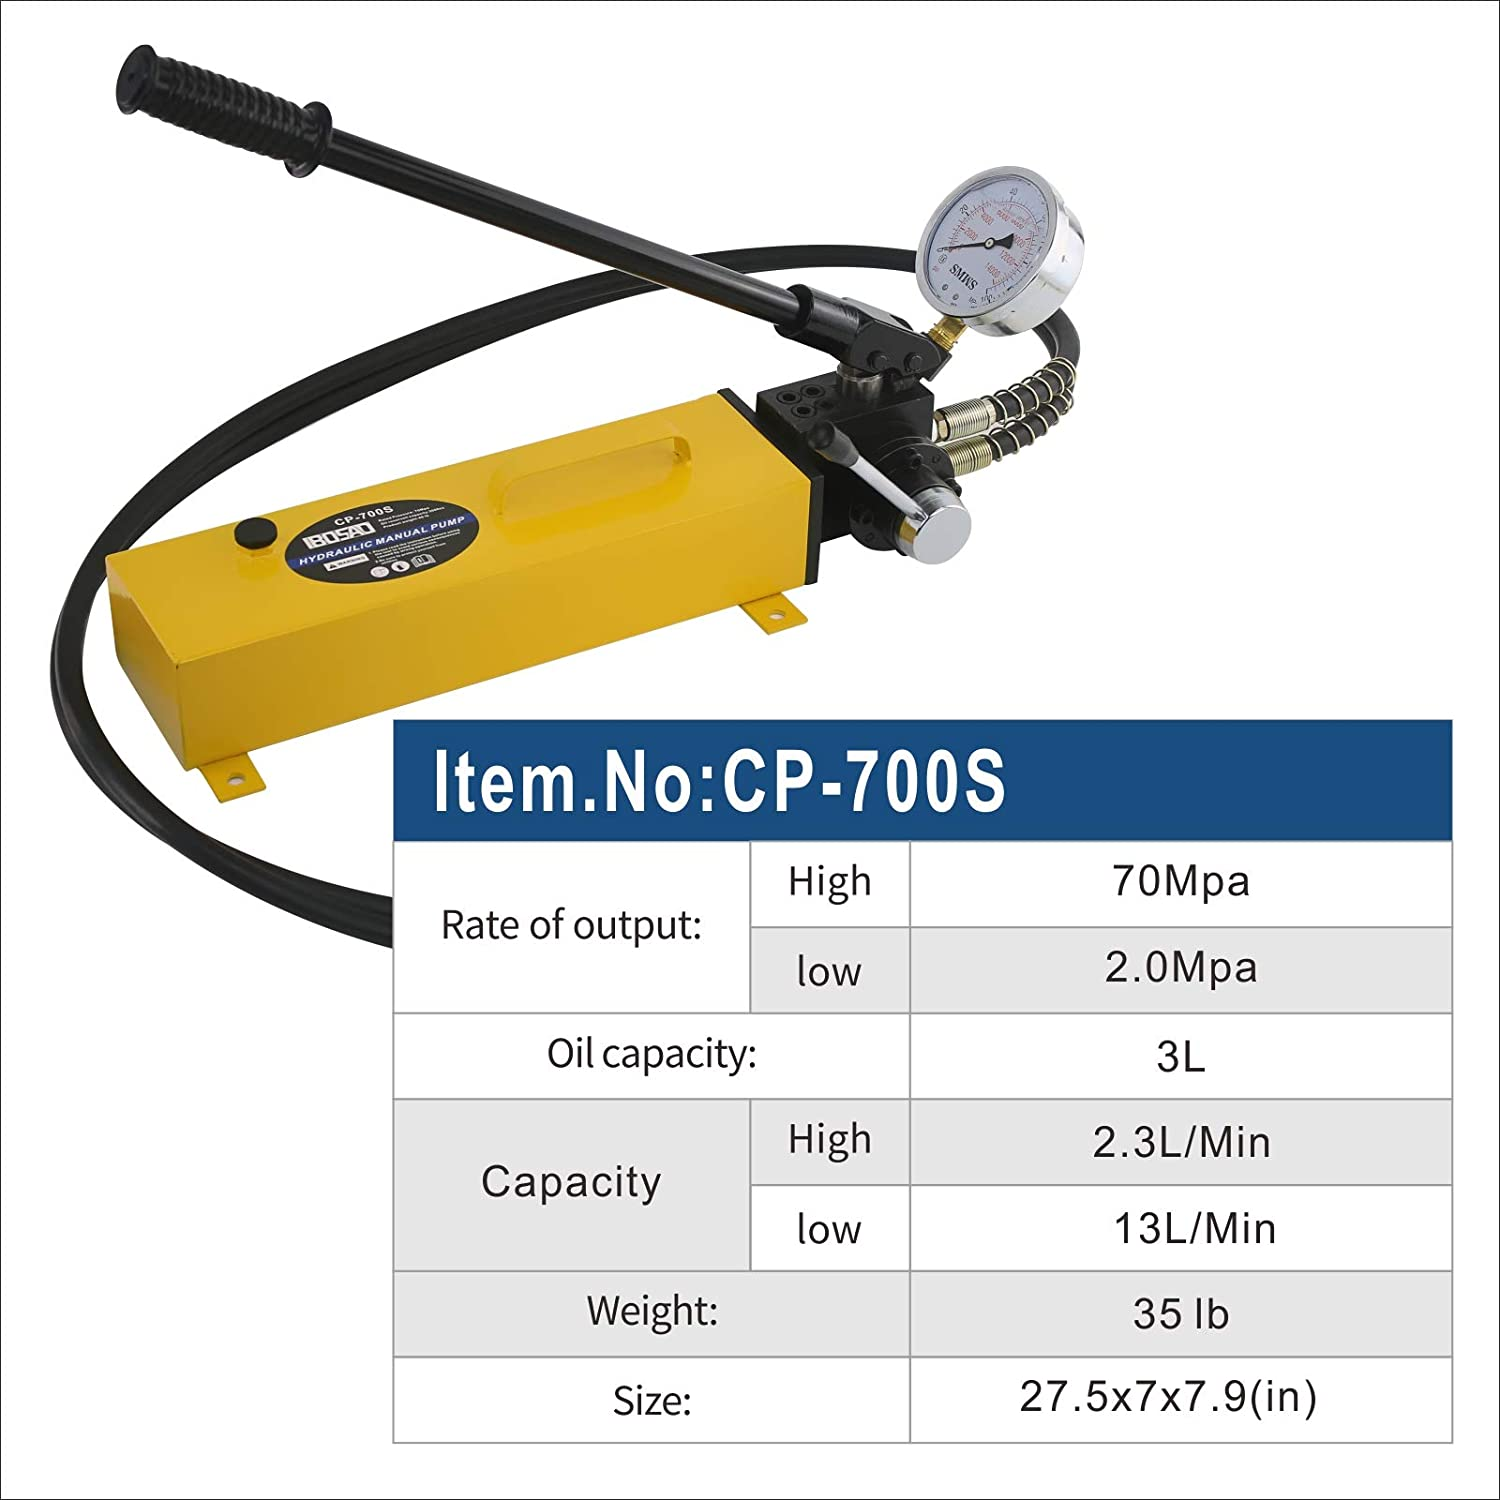 IBOSAD Double Acting Manual Hand Hydraulic Pump Hydraulic Oil Power Pack Pump 2 Stage,10k psi 183 Cubic in Capacity